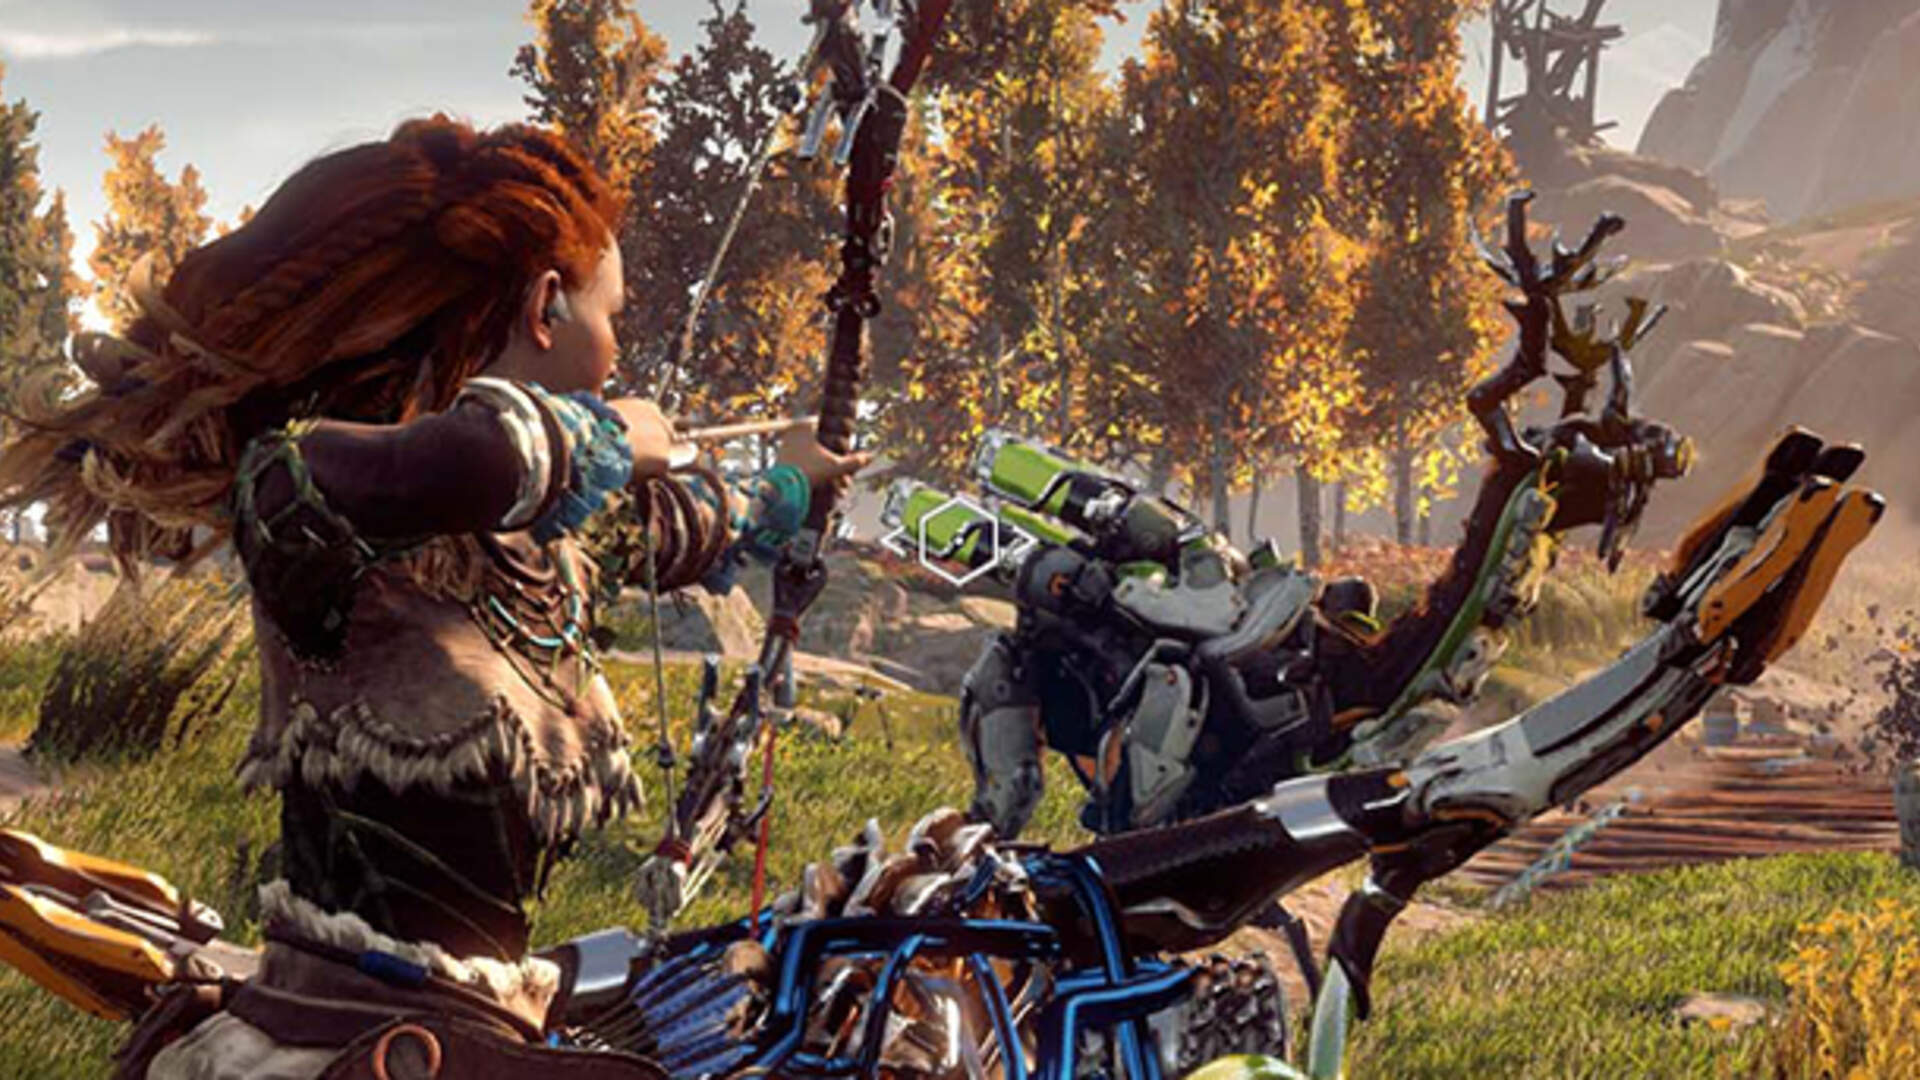 Horizon Zero Dawn Uncovers 2.6 Million in Sales Worldwide